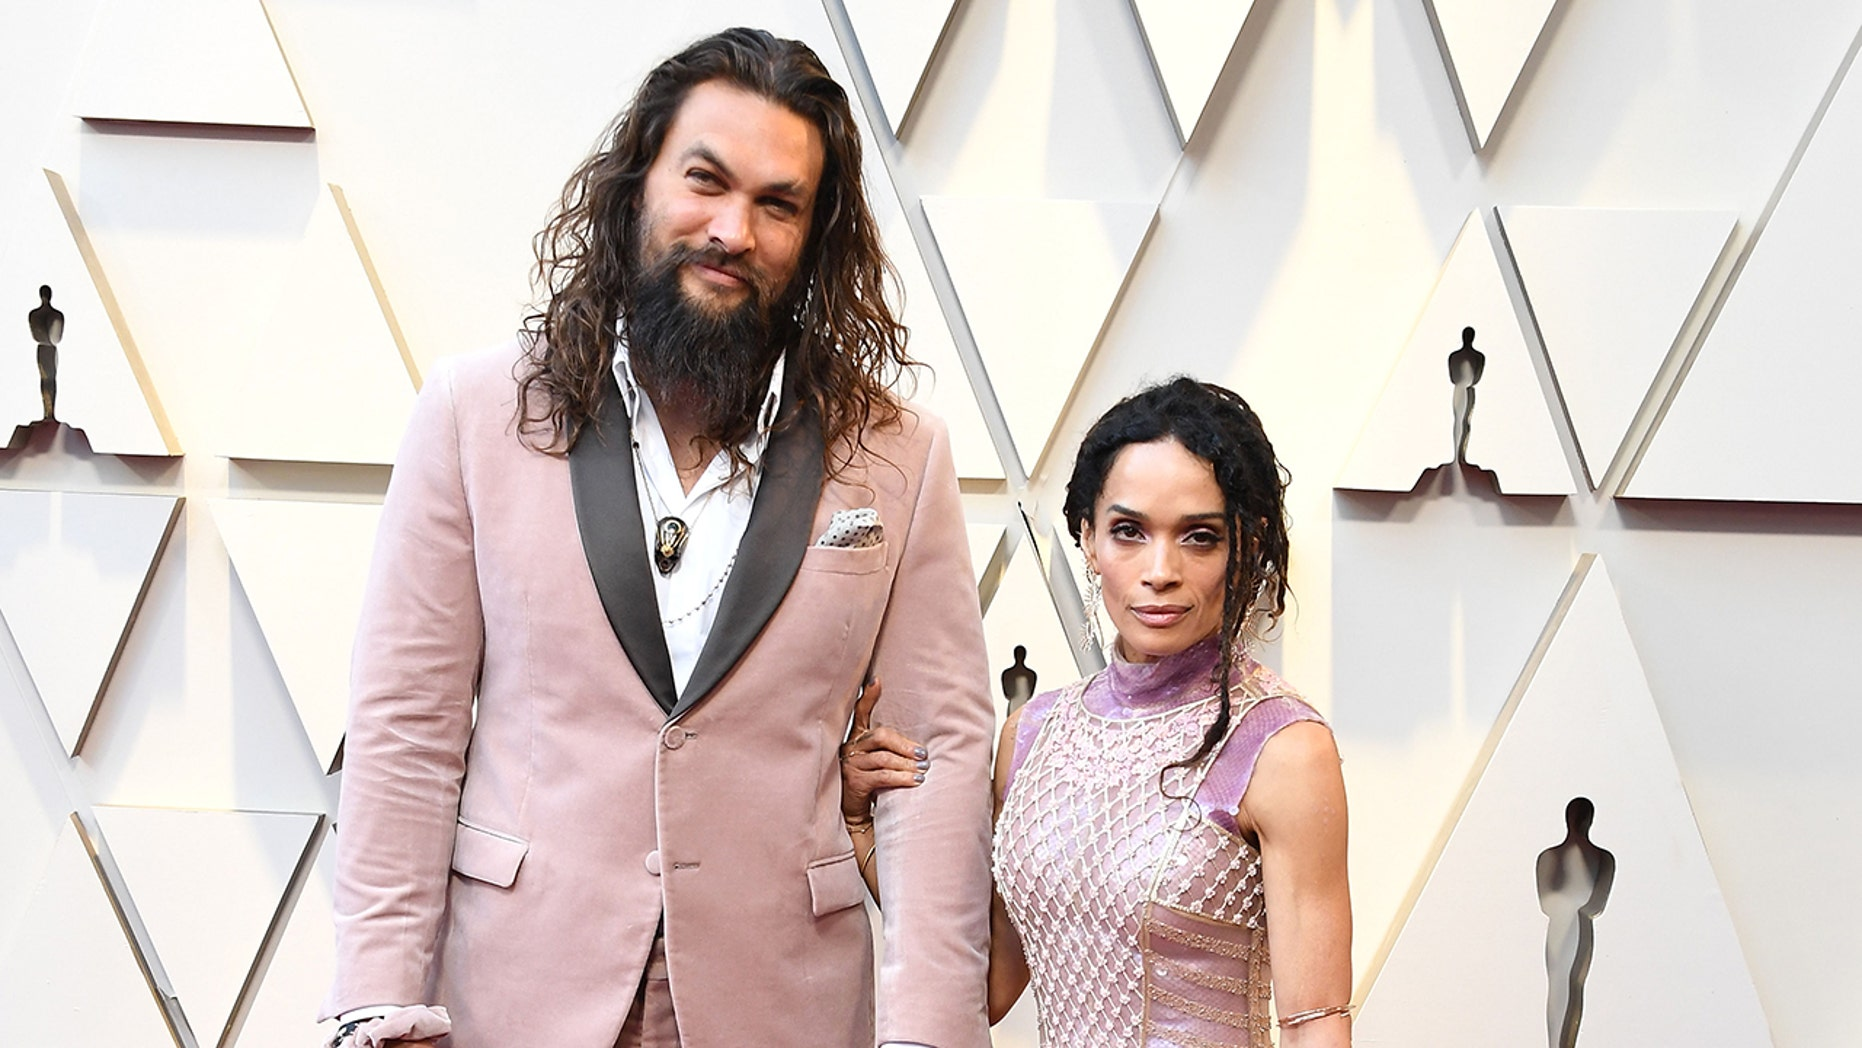 Jason Momoa reacts to Girl Scout selling 'Momoa' cookies